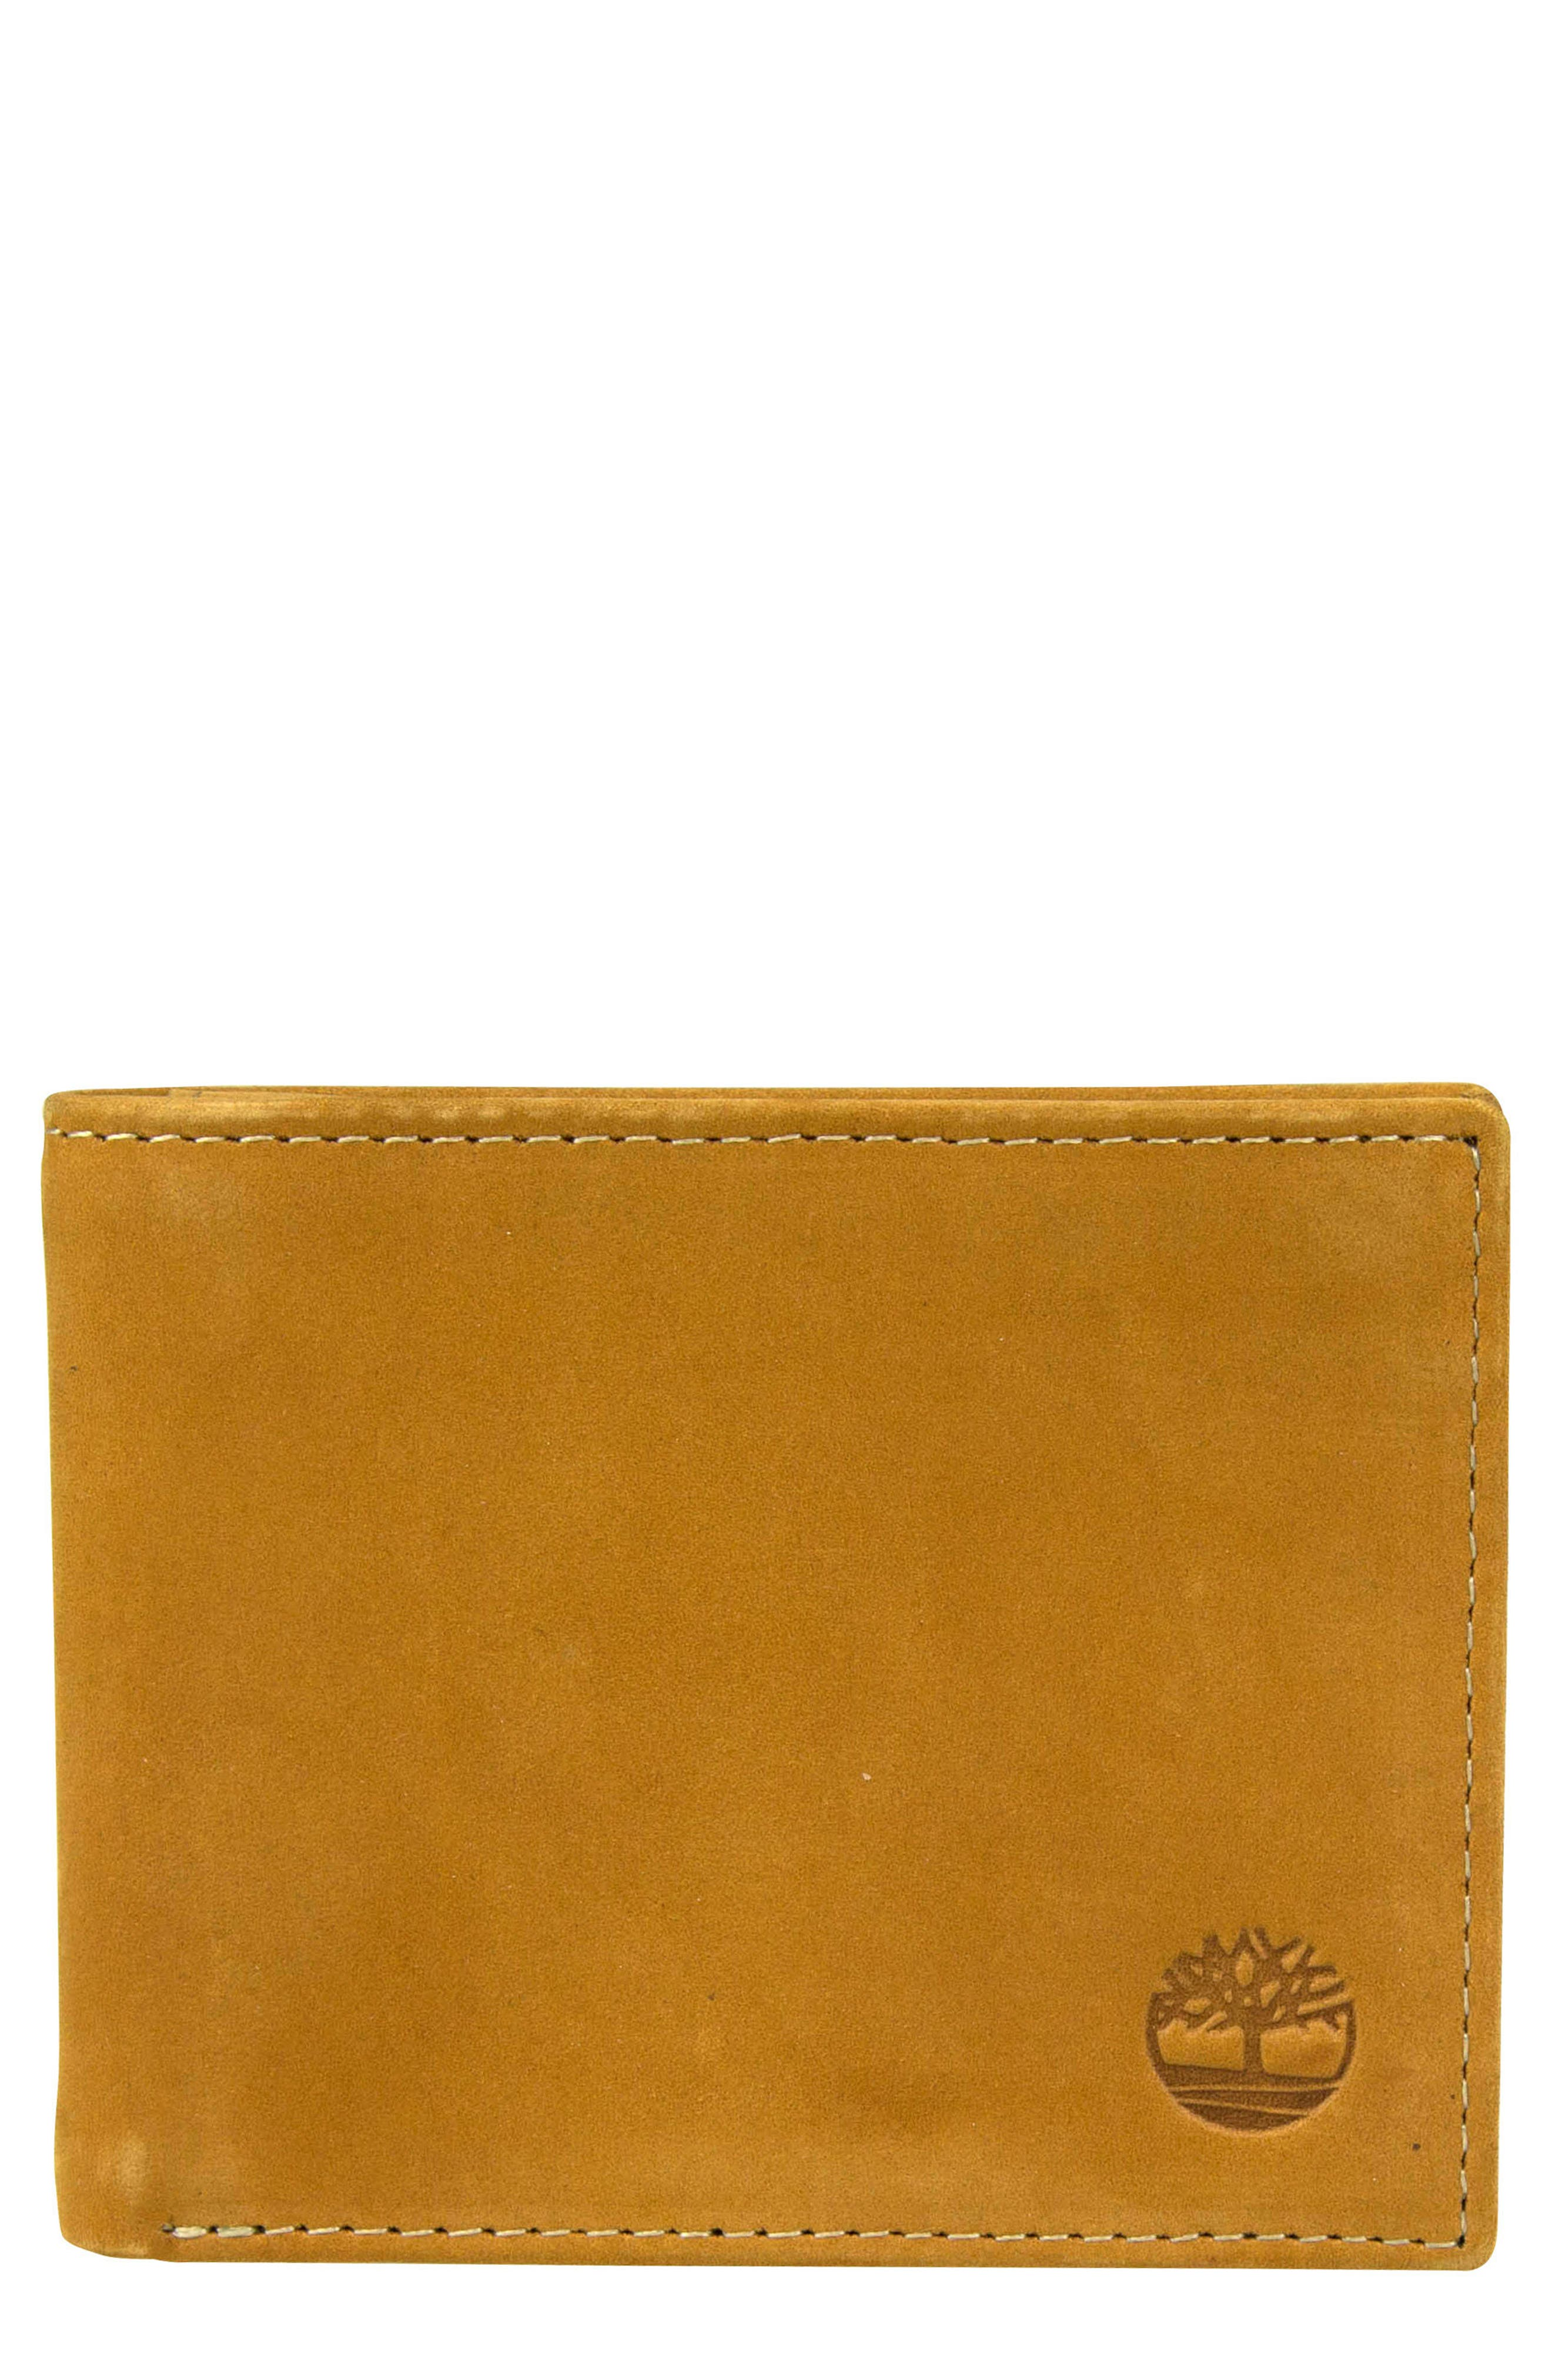 Icon Leather Wallet,                         Main,                         color, WHEAT